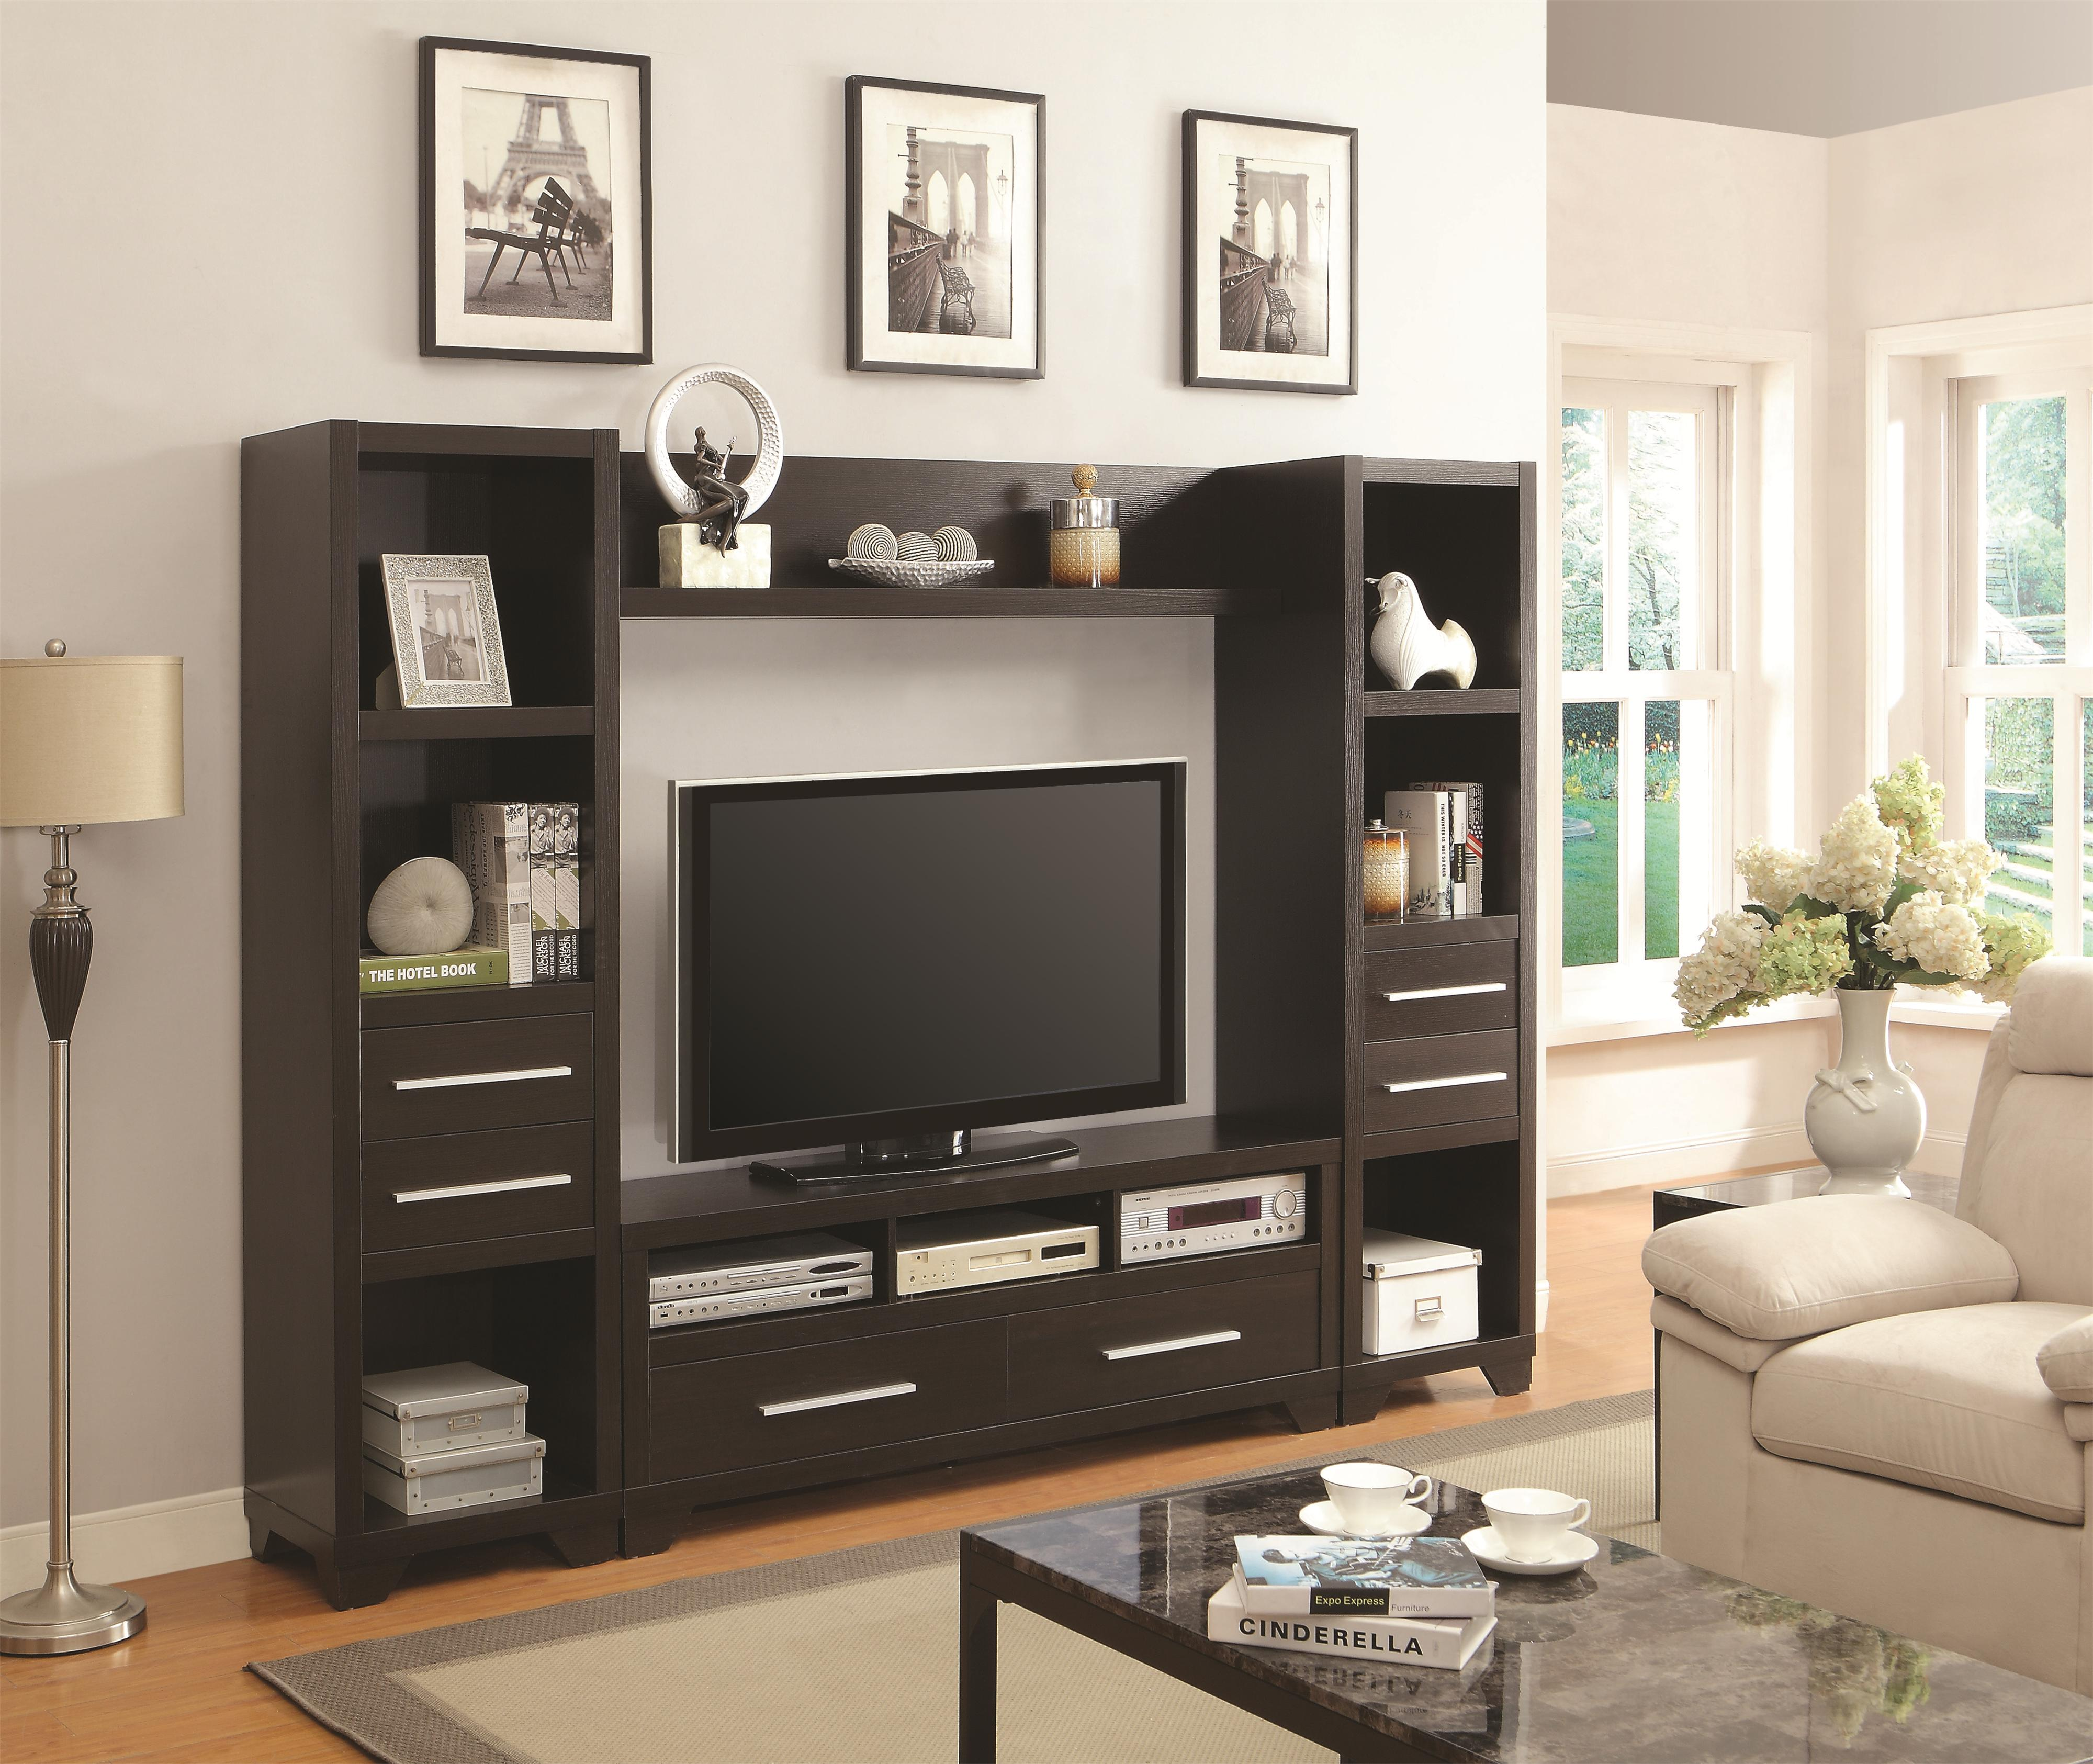 Coaster Entertainment Units Entertainment Wall Unit - Item Number: 703301+2x703302+703303